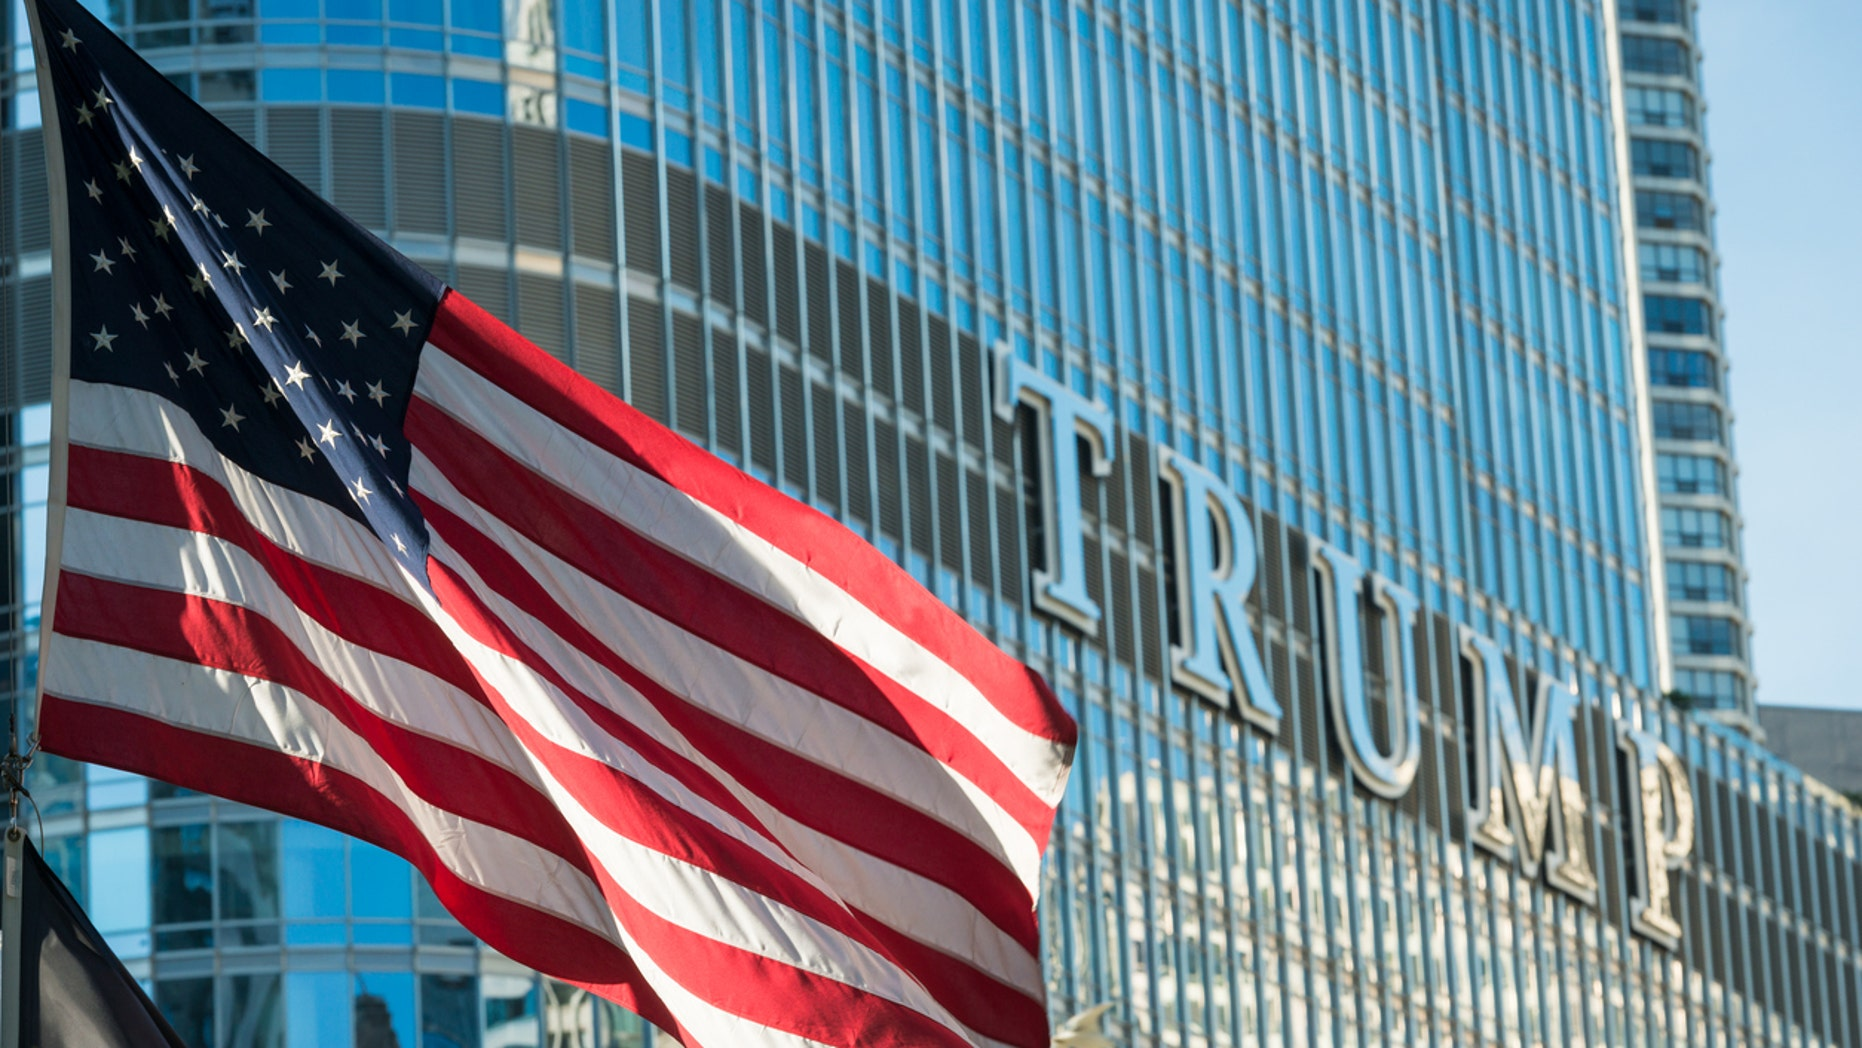 Trump Hotels Chicago restaurant is getting slammed on social media.